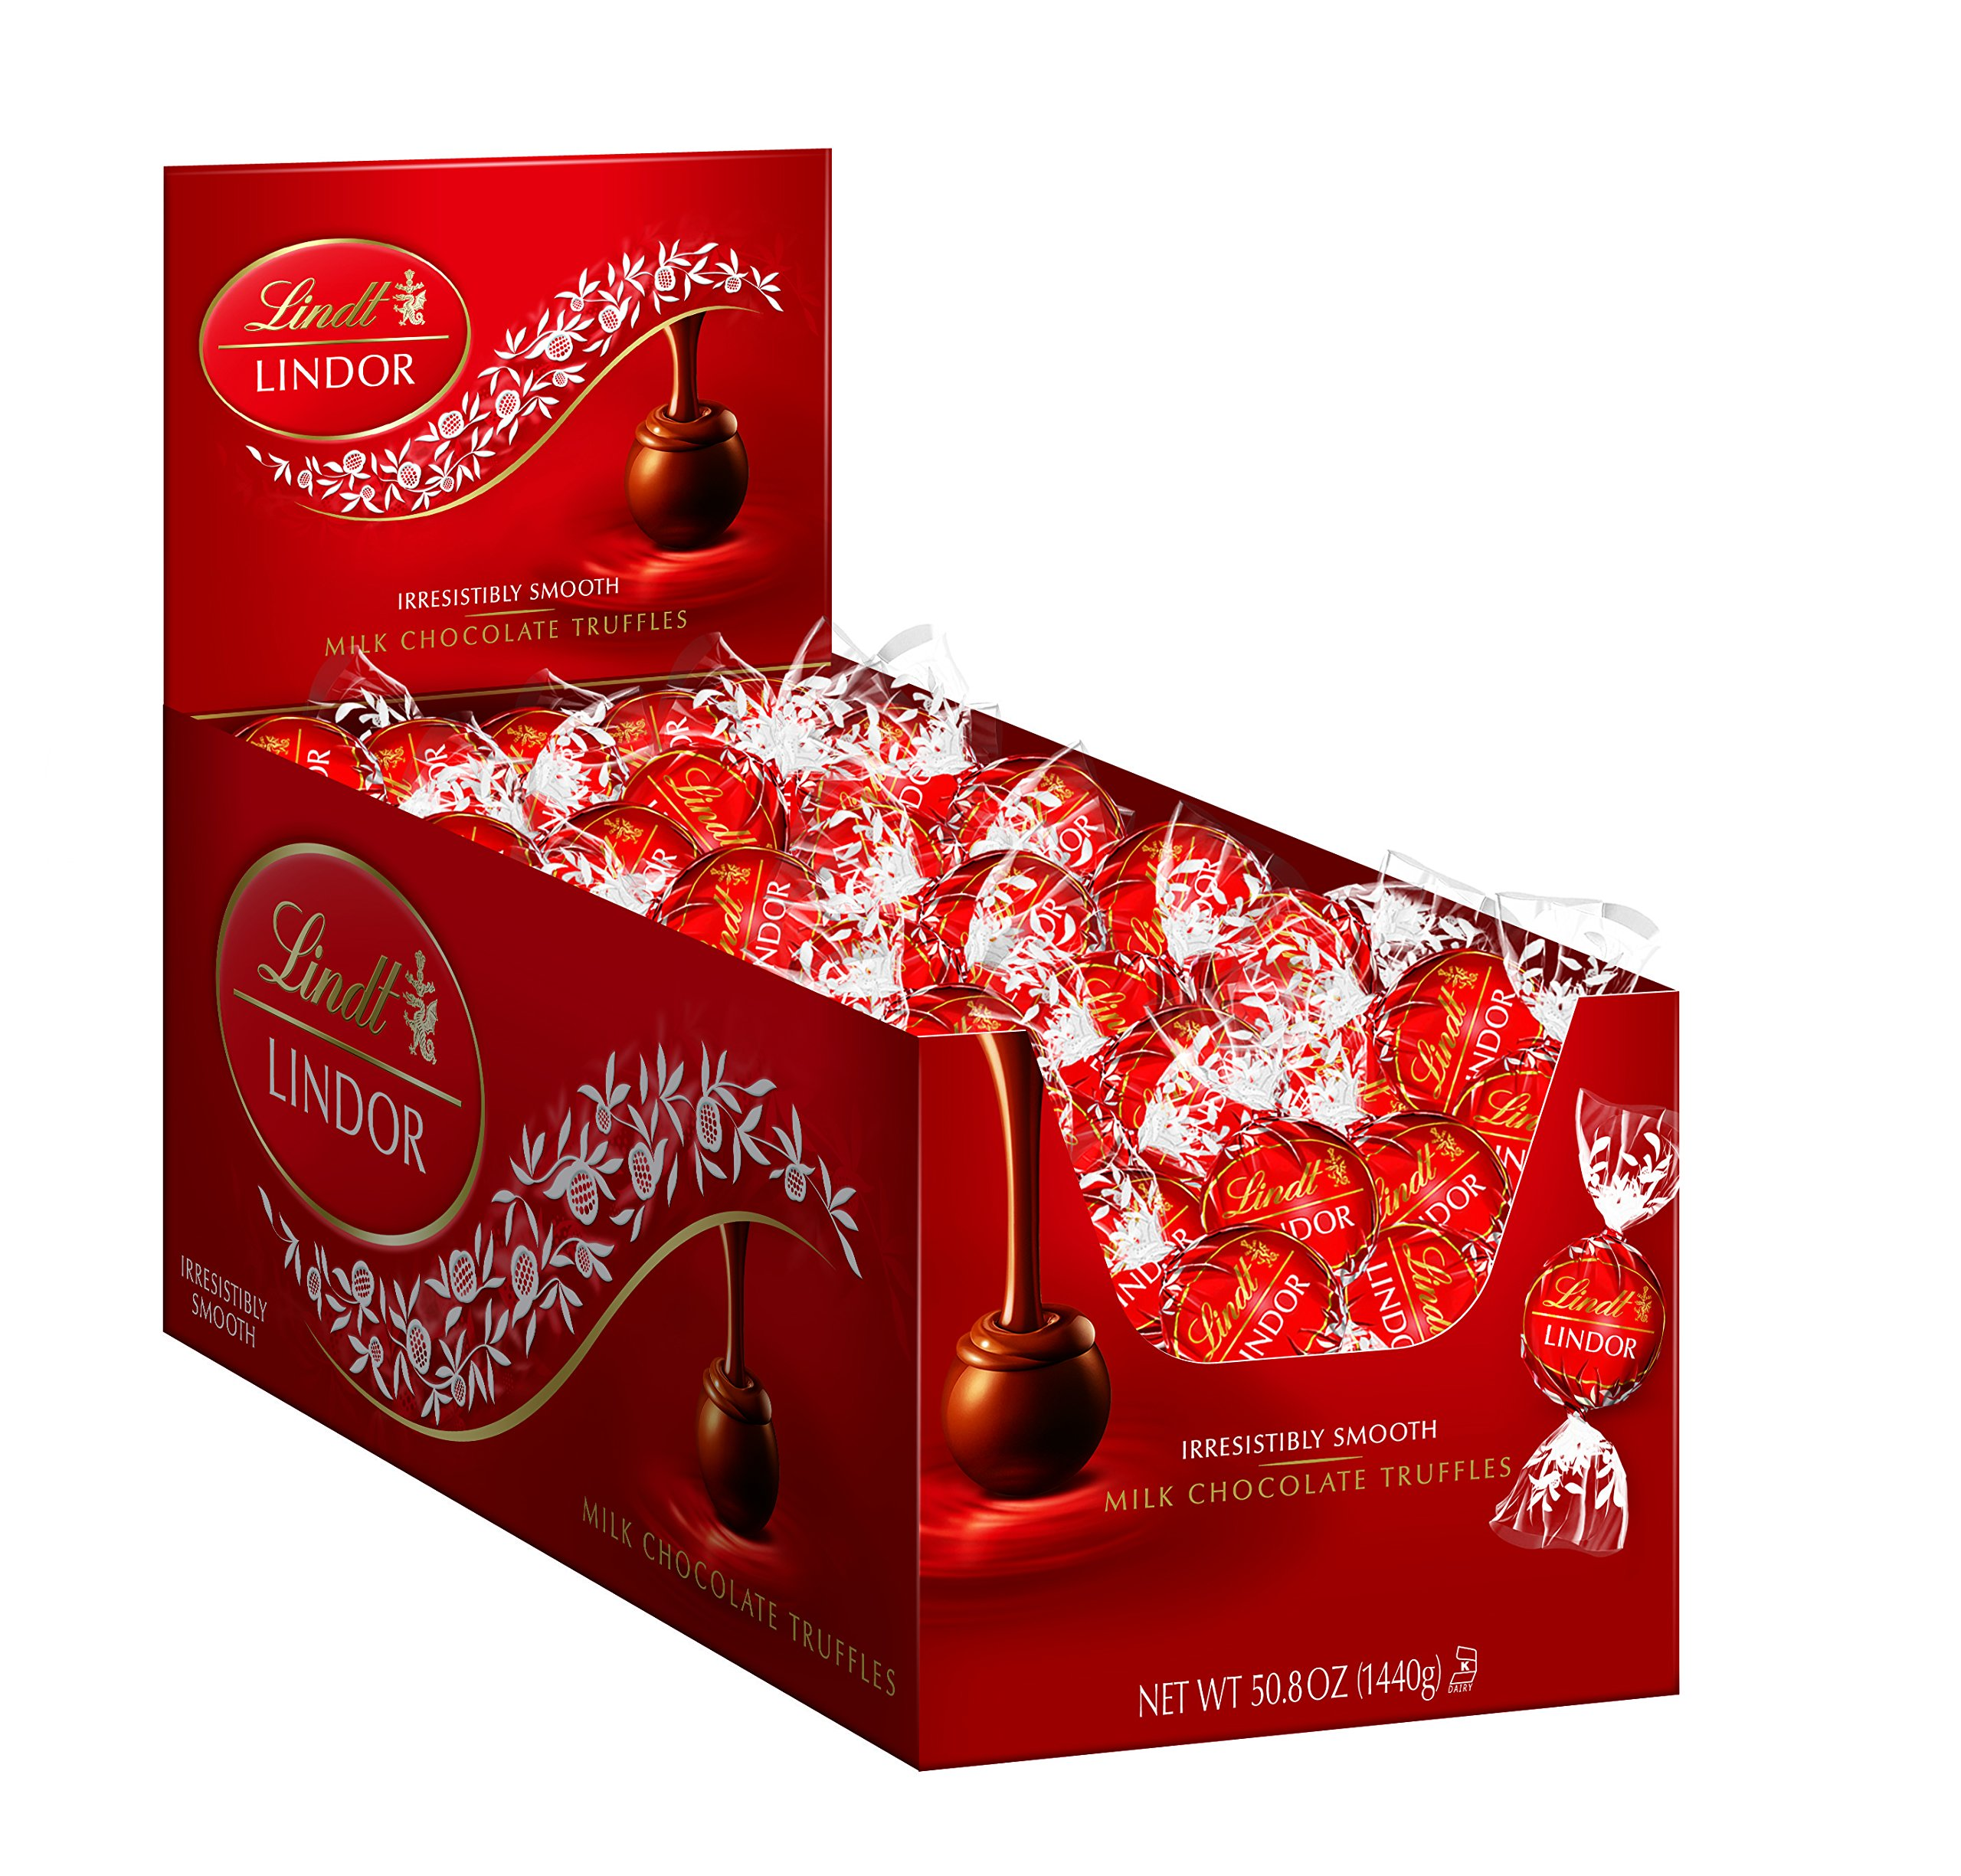 Lindt LINDOR Milk Chocolate Truffles, Kosher, 120 Count Box